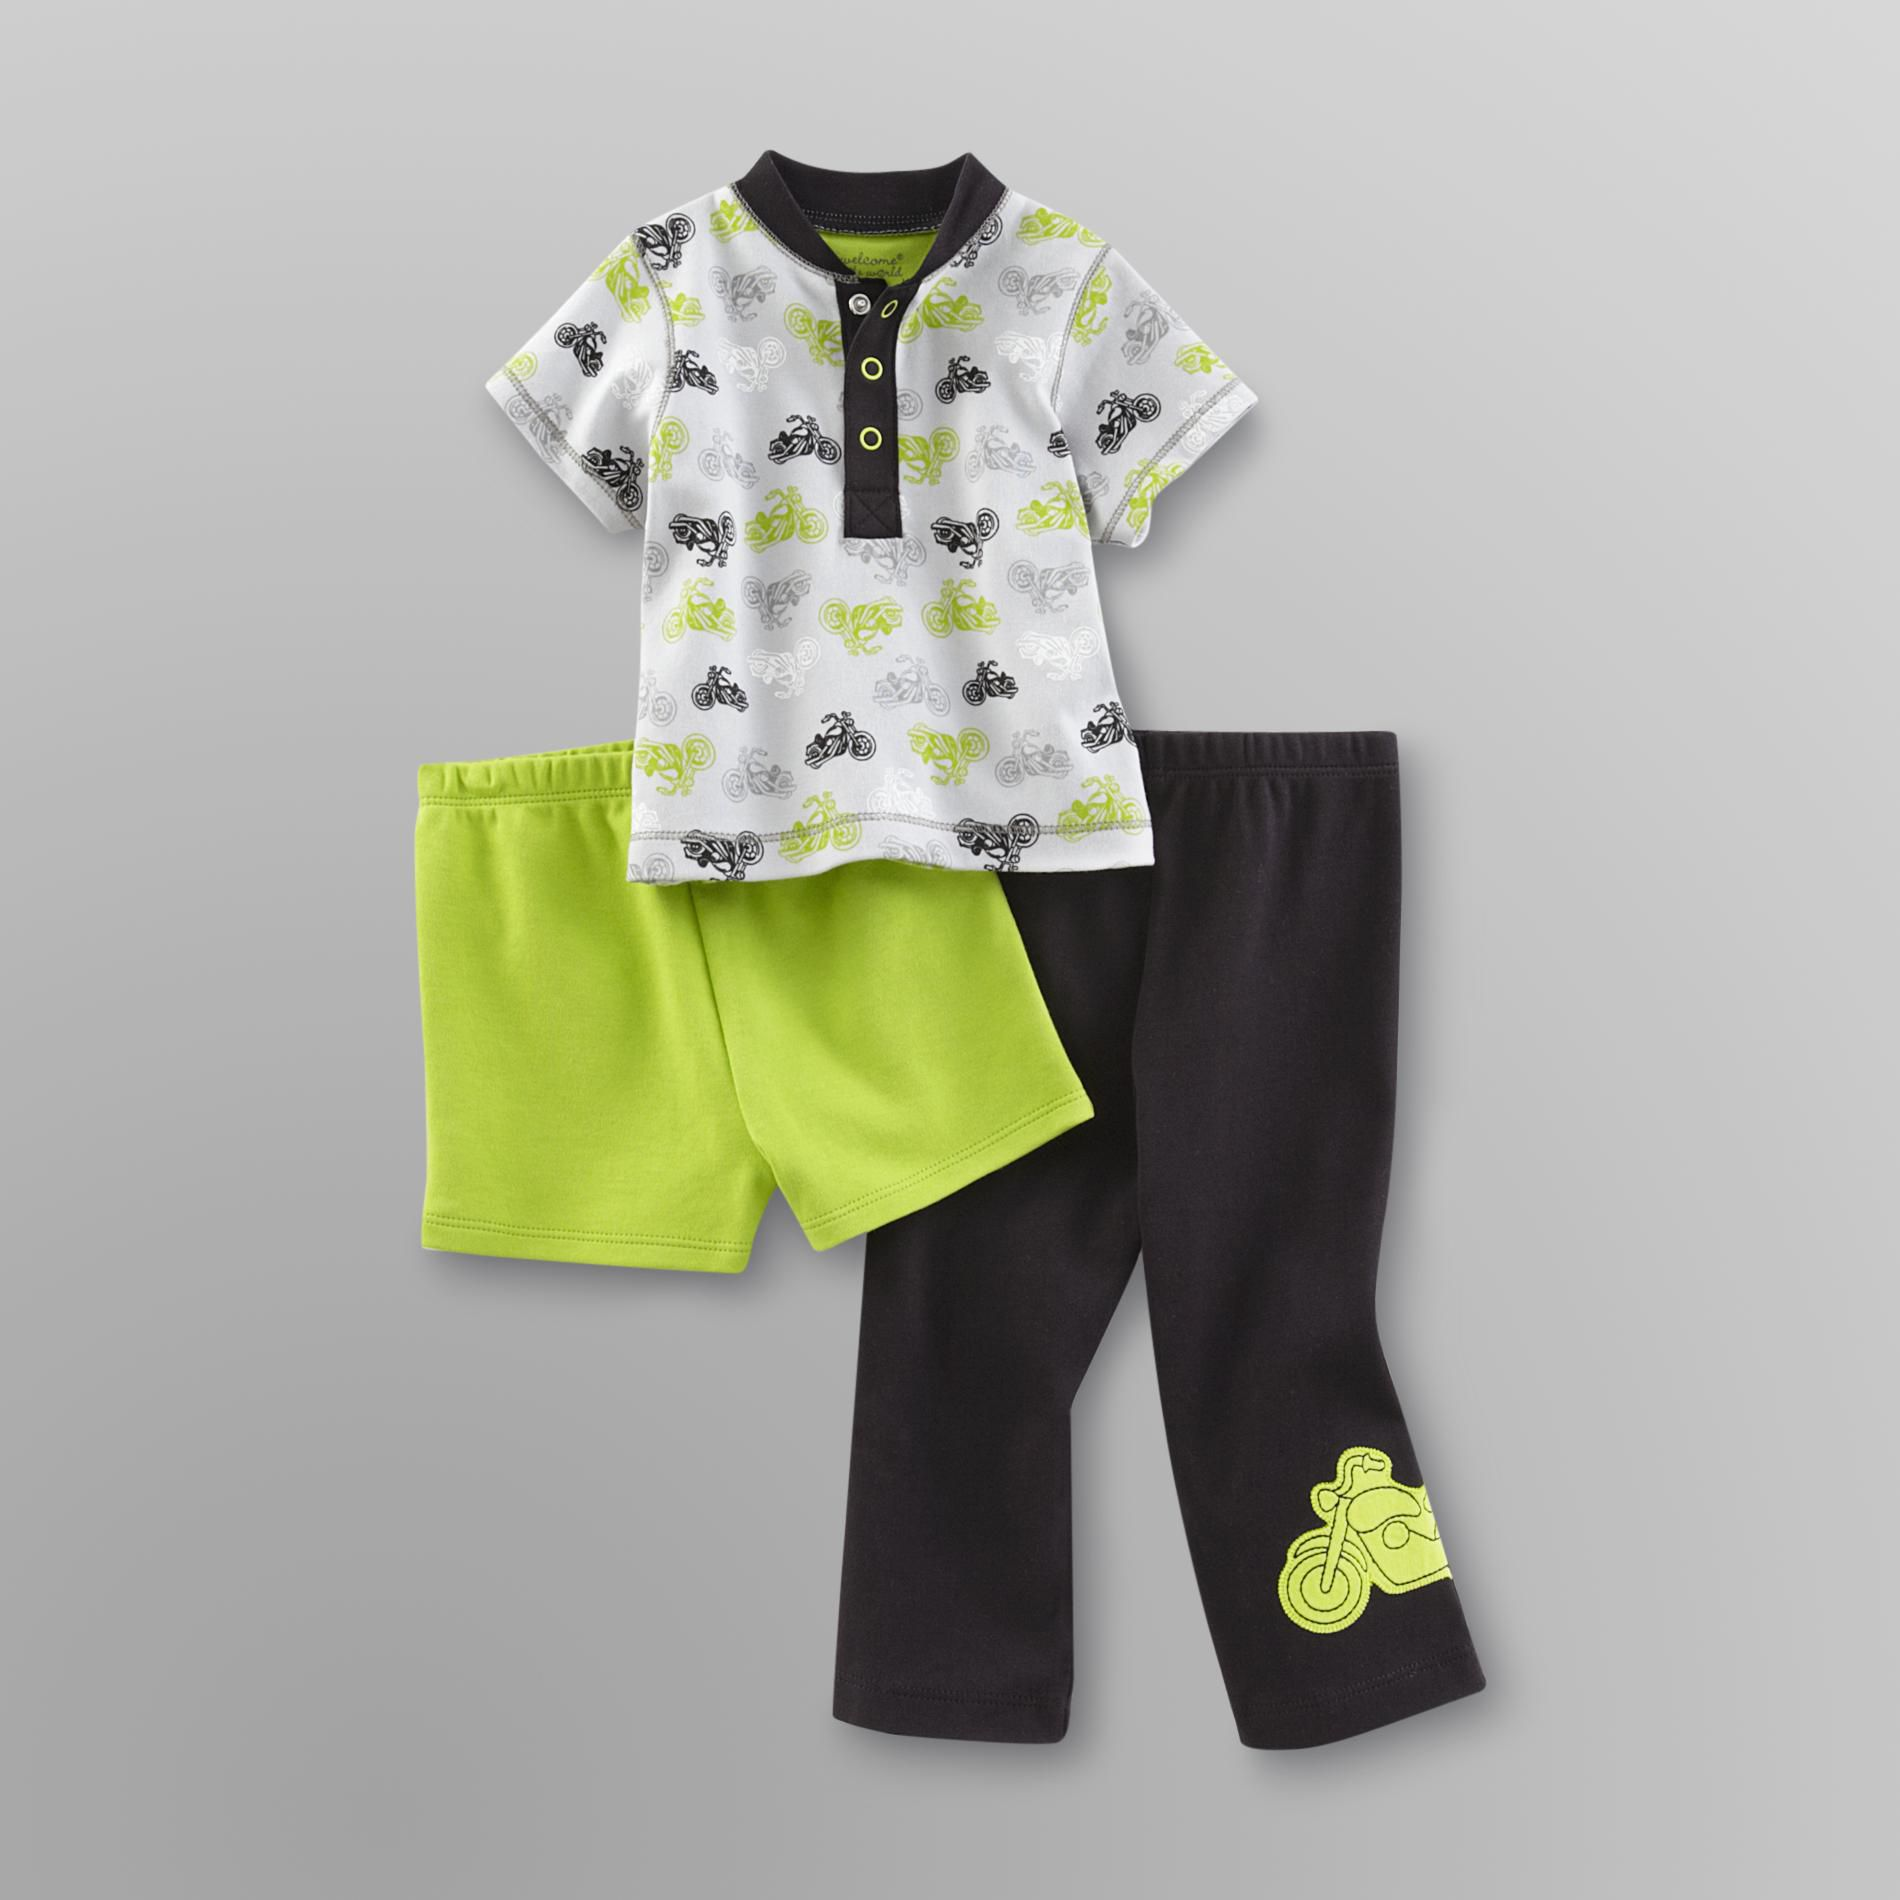 Infant Boy's Shirt, Pants & Shorts - Motorcycle